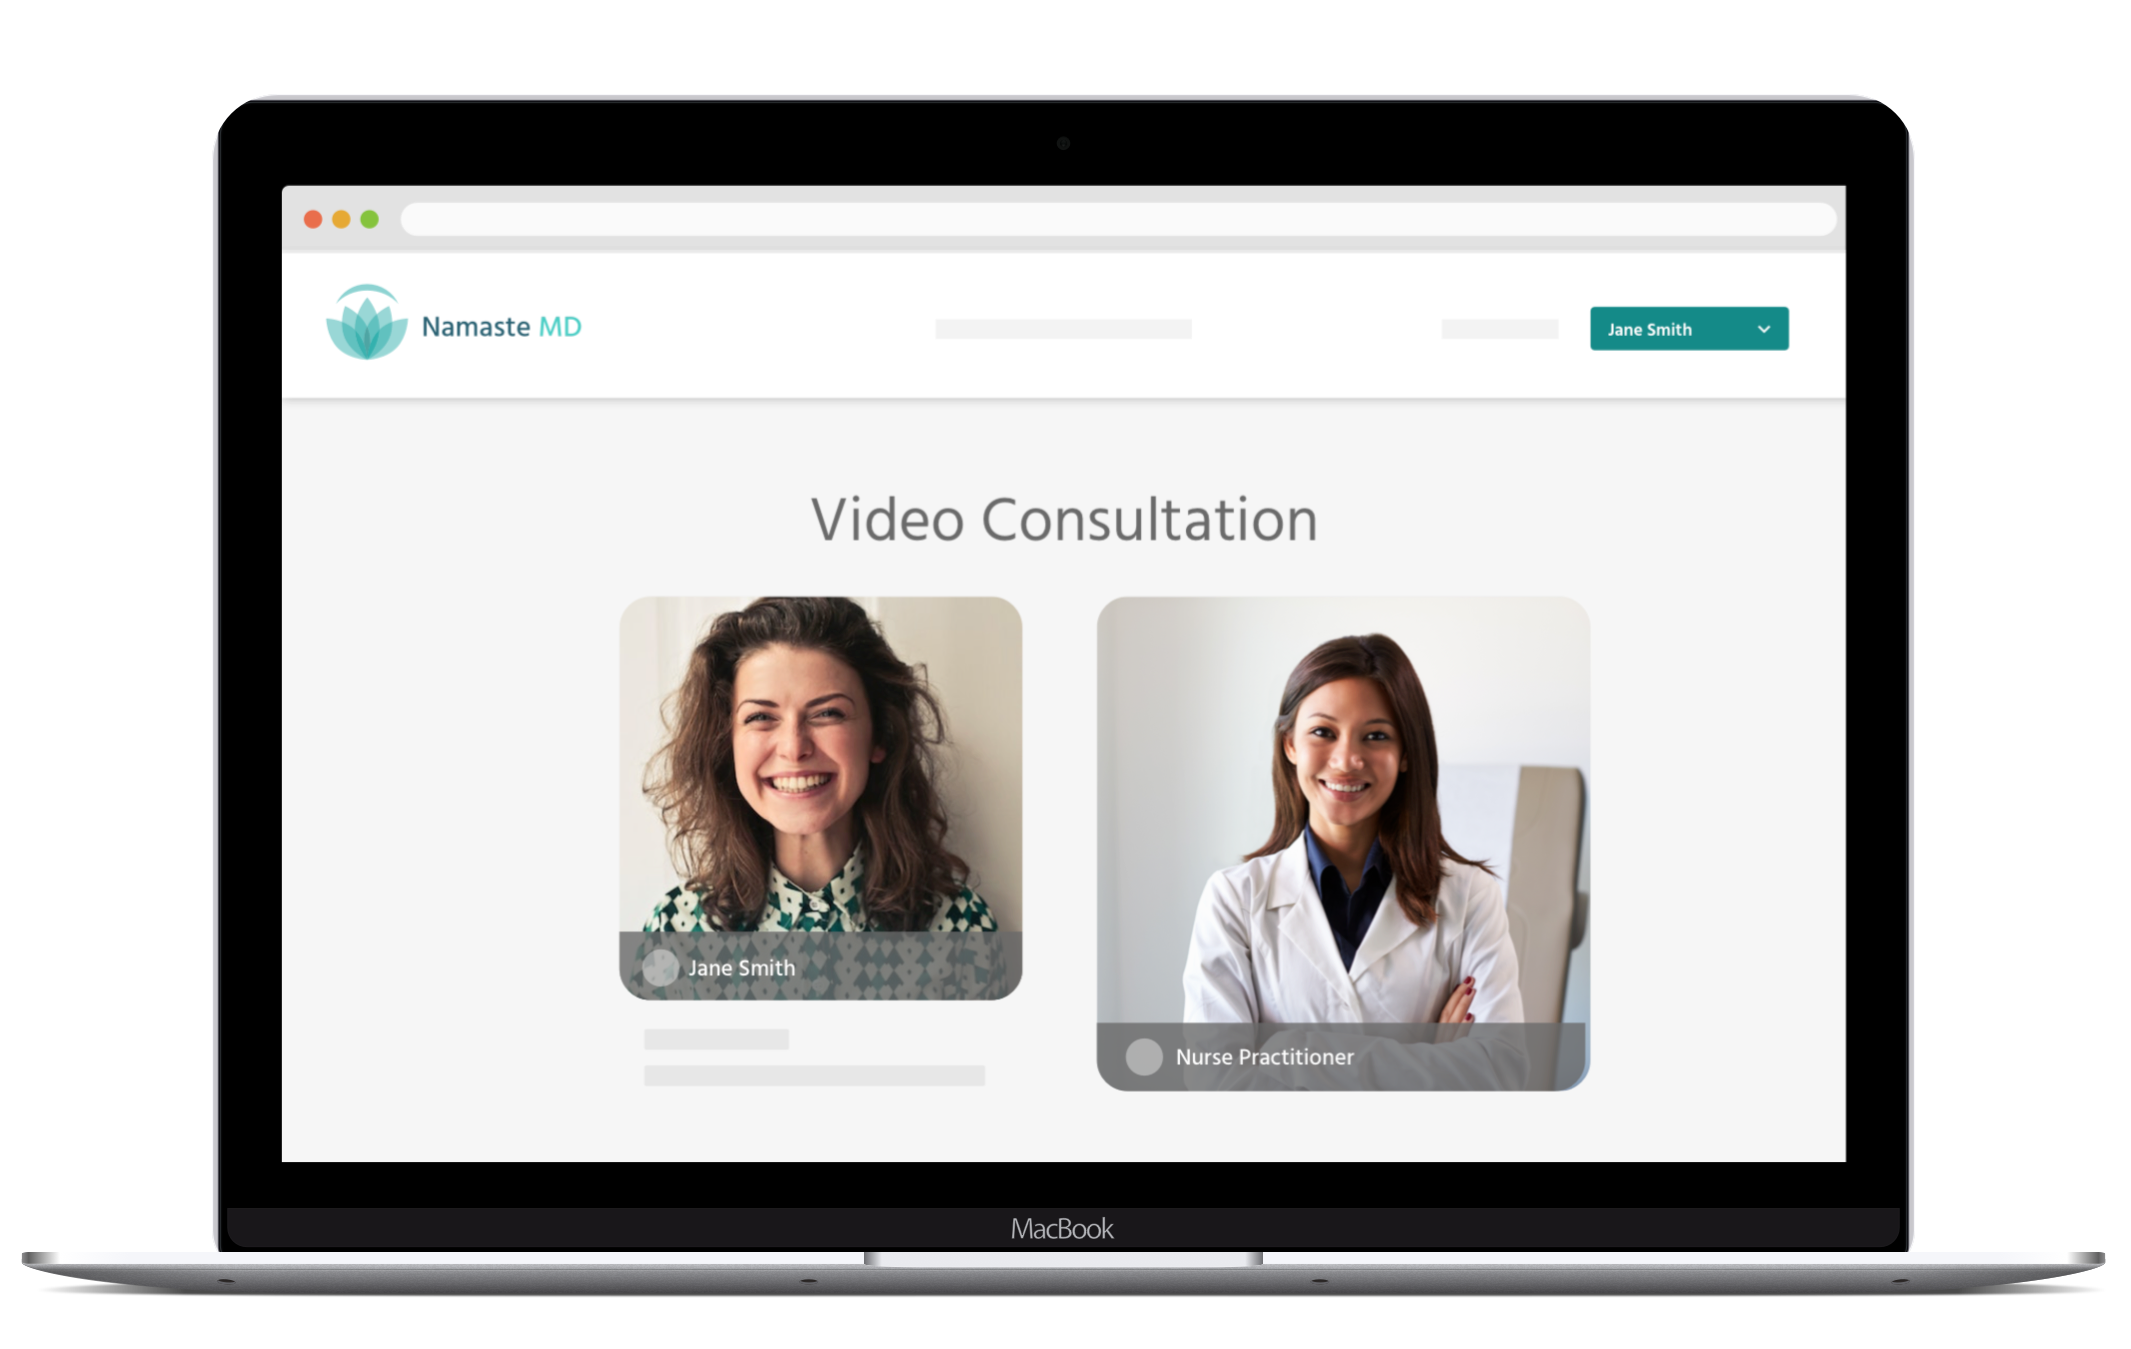 A computer screen showing video consultation